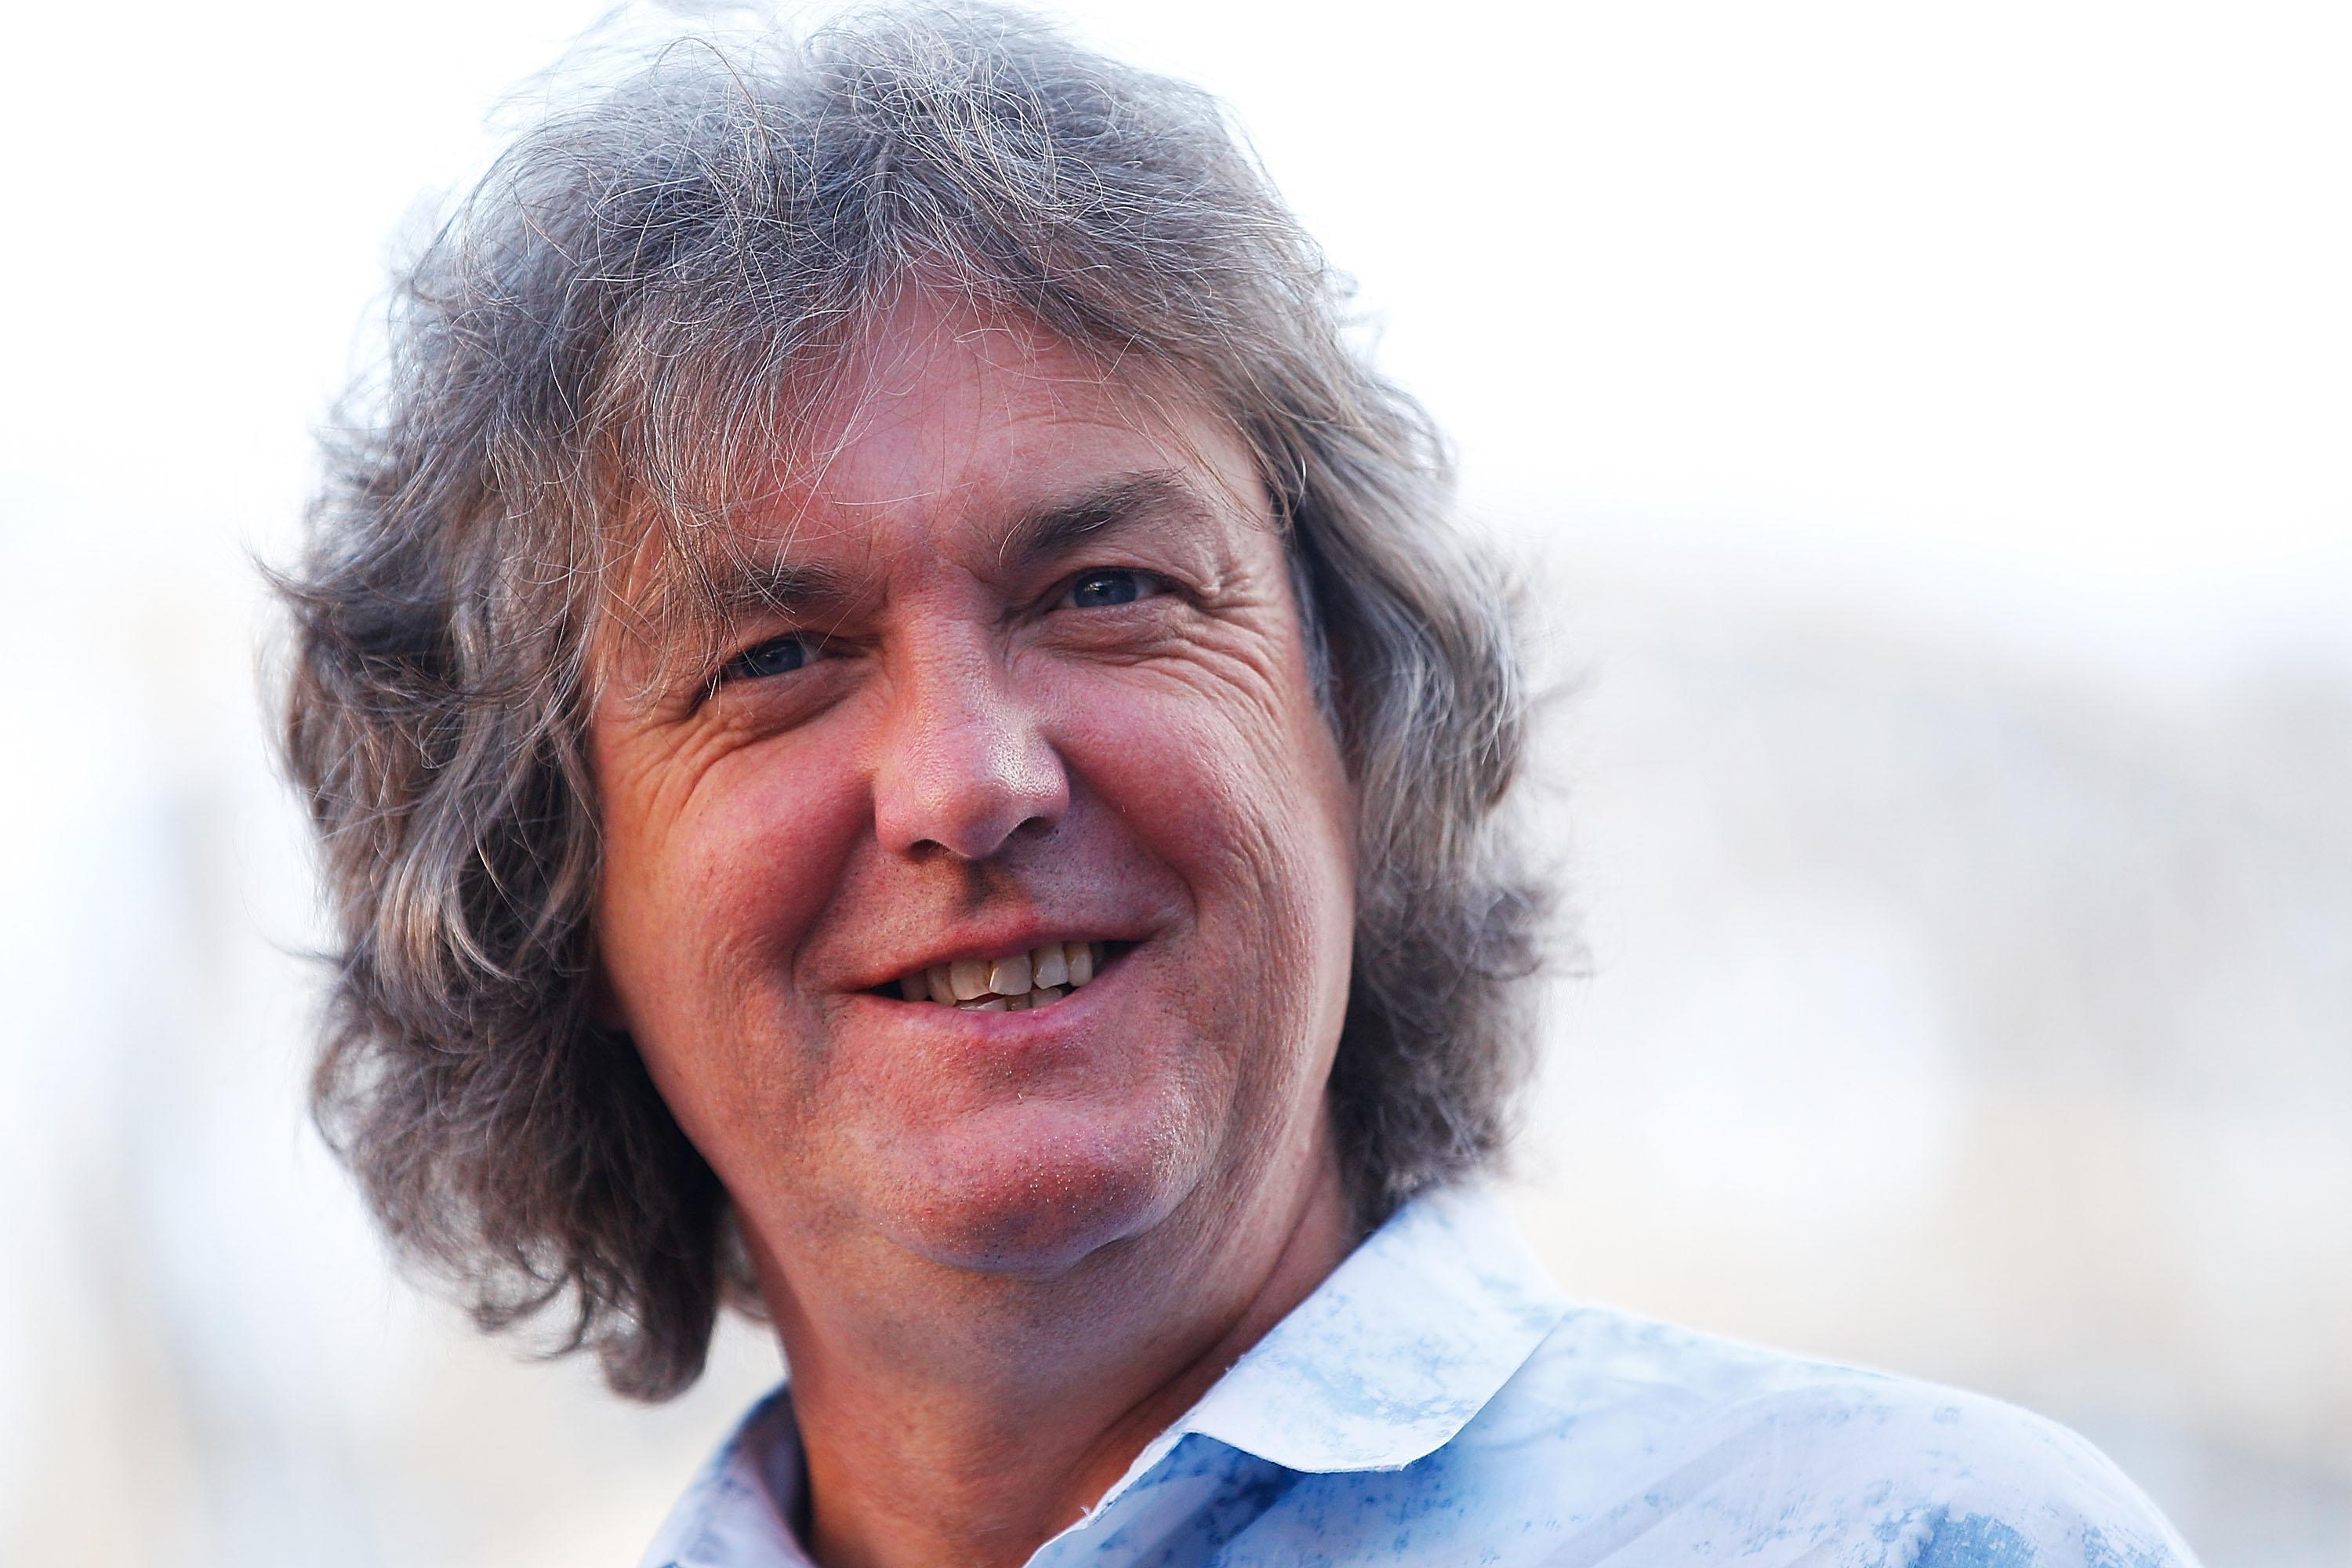 James May gives current 'Top Gear' presenters his seal of approval: 'They're almost as good as us'